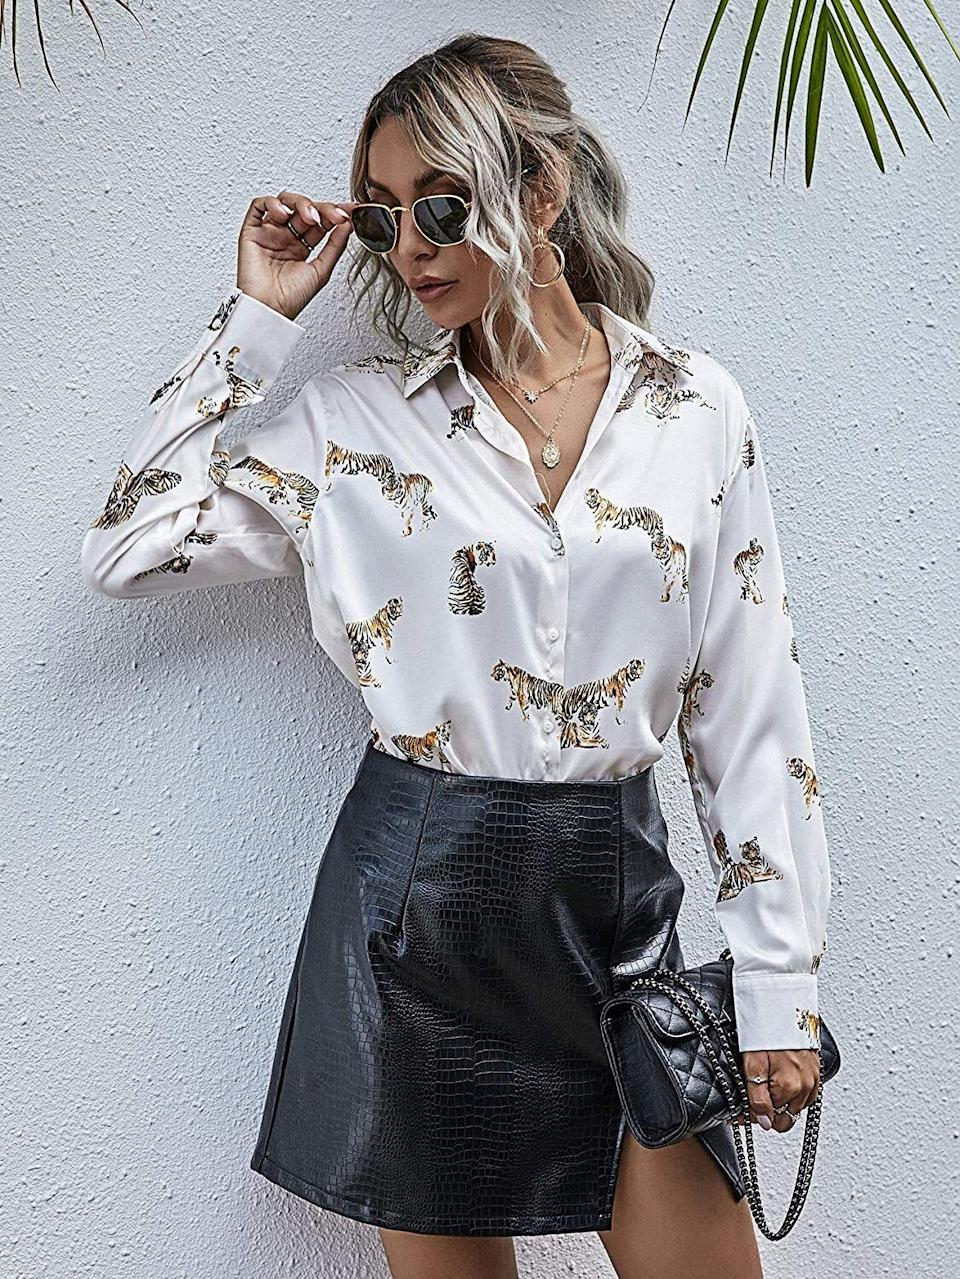 """If you're sick of drowning under bulky sweaters, this is perfect for you. This silky number only looks three-dollar-signs fancy, and the moment you slip it on? You might just be mistaken for an influencer.<br /><br /><strong>Promising review:</strong>""""Wow! I never write reviews and honestly, I never got anything great on Amazon but this top is fantastic! It was inexpensive but does not look cheap, the golden color is beautiful. I could have gone down a size but it's fine I will be tucking in... beautiful soft blouse I'm very happy with this purchase!"""" —<a href=""""https://www.amazon.com/gp/customer-reviews/RJ6E6HSFYQZ47?&linkCode=ll2&tag=huffpost-bfsyndication-20&linkId=de7132105ac6b474f5b3d513585d4cb2&language=en_US&ref_=as_li_ss_tl"""" target=""""_blank"""" rel=""""nofollow noopener noreferrer"""" data-skimlinks-tracking=""""5925990"""" data-vars-affiliate=""""Amazon"""" data-vars-href=""""https://www.amazon.com/gp/customer-reviews/RJ6E6HSFYQZ47?tag=bfjasminsandal-20&ascsubtag=5925990%2C6%2C36%2Cmobile_web%2C0%2C0%2C16625403"""" data-vars-keywords=""""cleaning,fast fashion"""" data-vars-link-id=""""16625403"""" data-vars-price="""""""" data-vars-product-id=""""21064103"""" data-vars-product-img="""""""" data-vars-product-title="""""""" data-vars-retailers=""""Amazon"""">Alex Velez</a><br /><br /><a href=""""https://www.amazon.com/SOLY-HUX-Womens-Sleeve-Button/dp/B07VT2ZWJ9?&linkCode=ll1&tag=huffpost-bfsyndication-20&linkId=6795bac1395f66858e93fa71c3cf8433&language=en_US&ref_=as_li_ss_tl"""" target=""""_blank"""" rel=""""noopener noreferrer""""><strong>Get it from Amazon for$11.99+(available in sizes XS-XL and 34 colors).</strong></a>"""